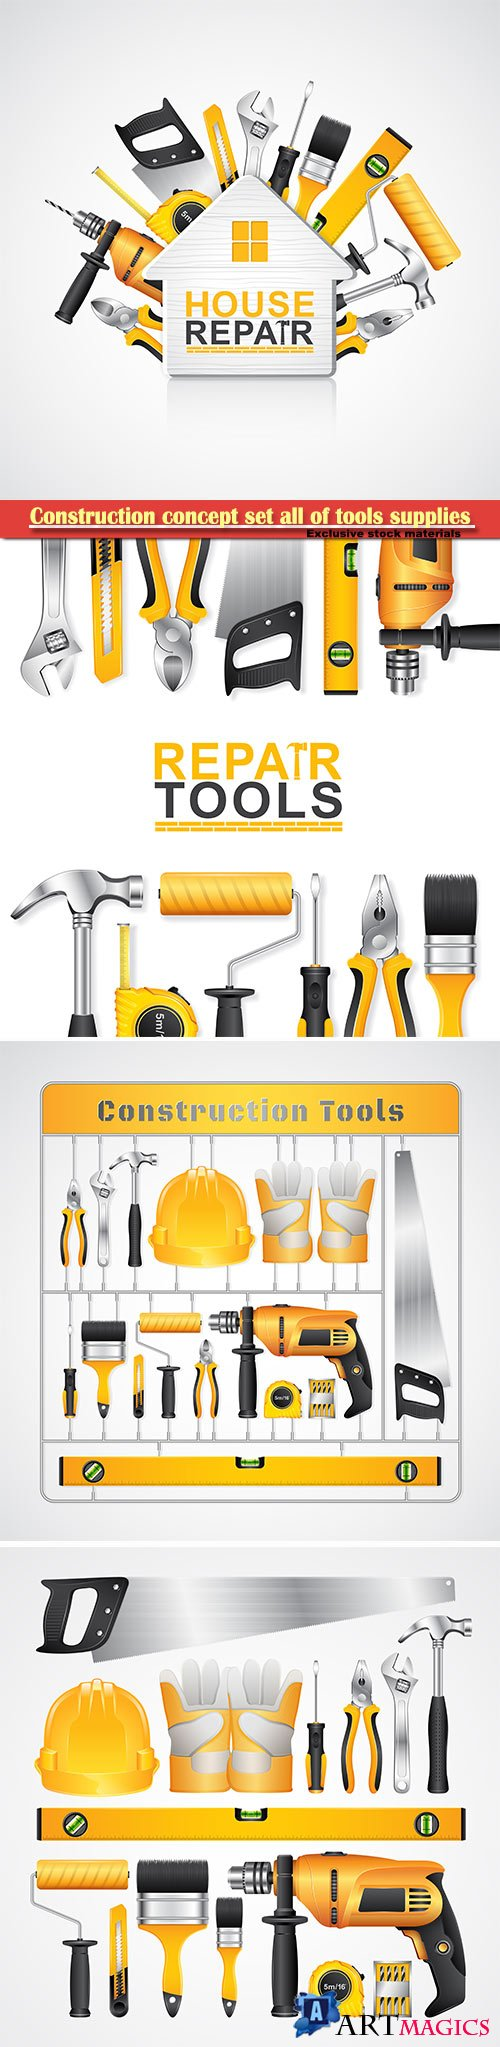 Construction concept set all of tools supplies for house repair builder vector illustration